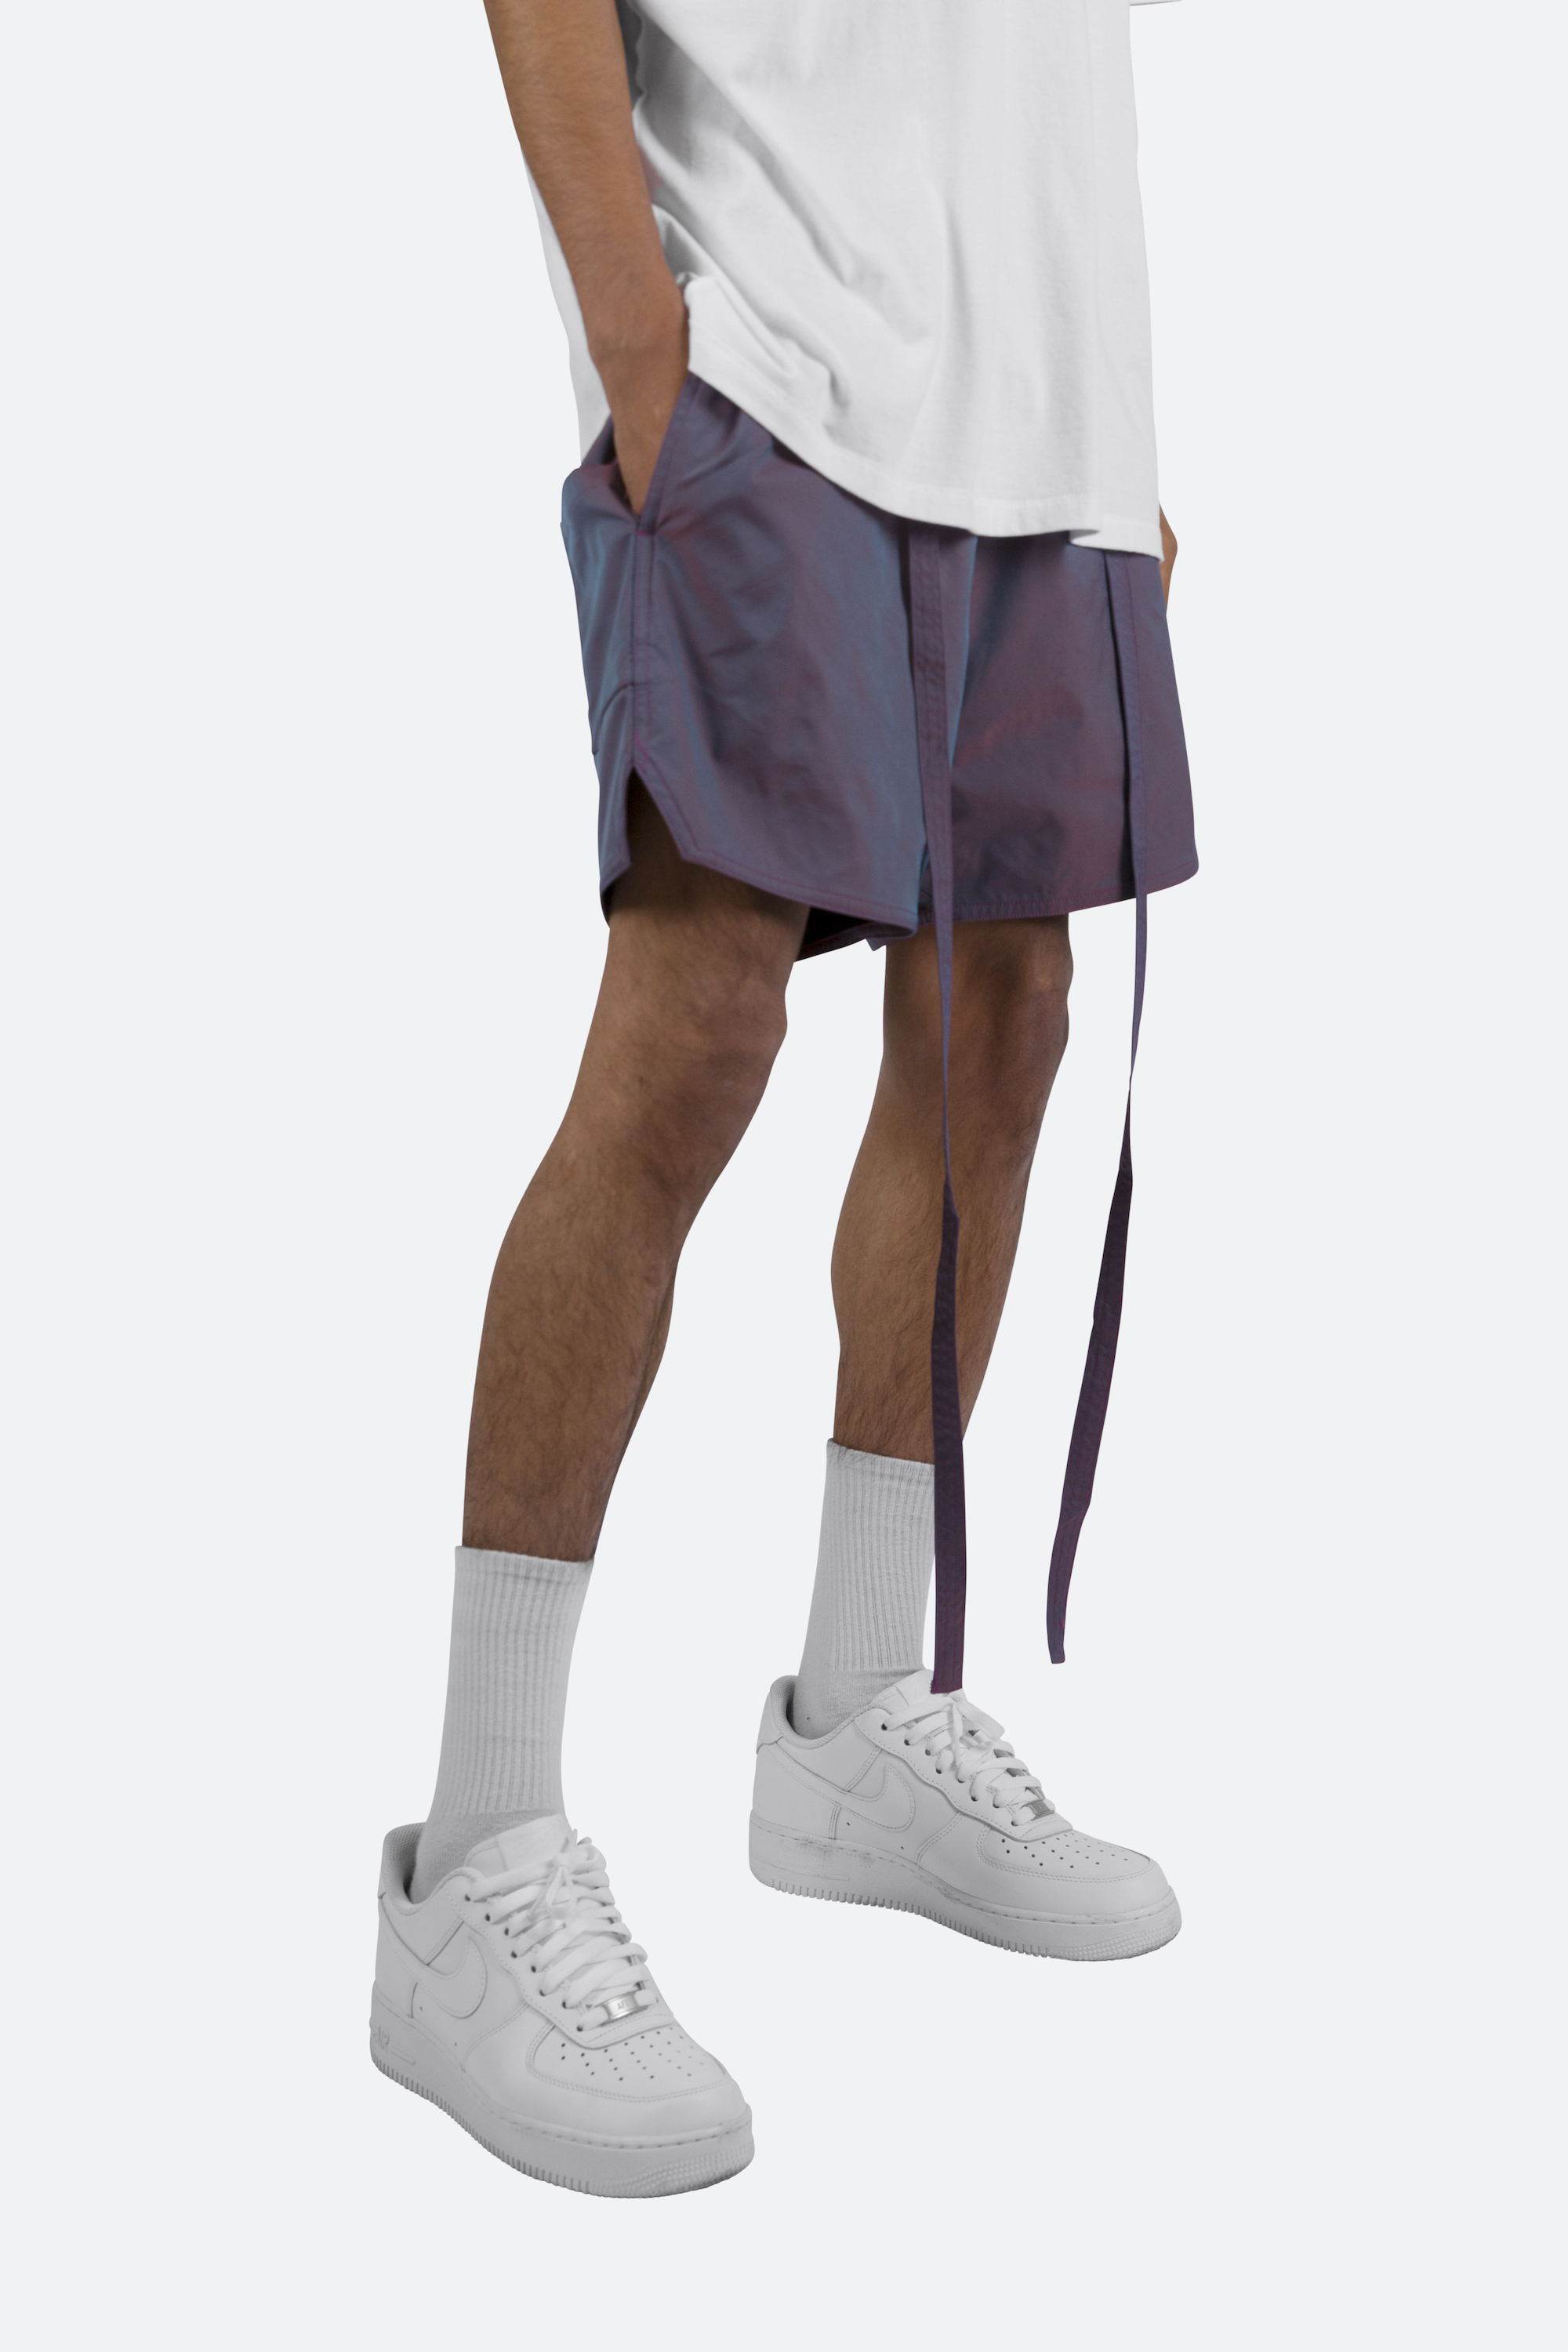 MNML iridescent shorts